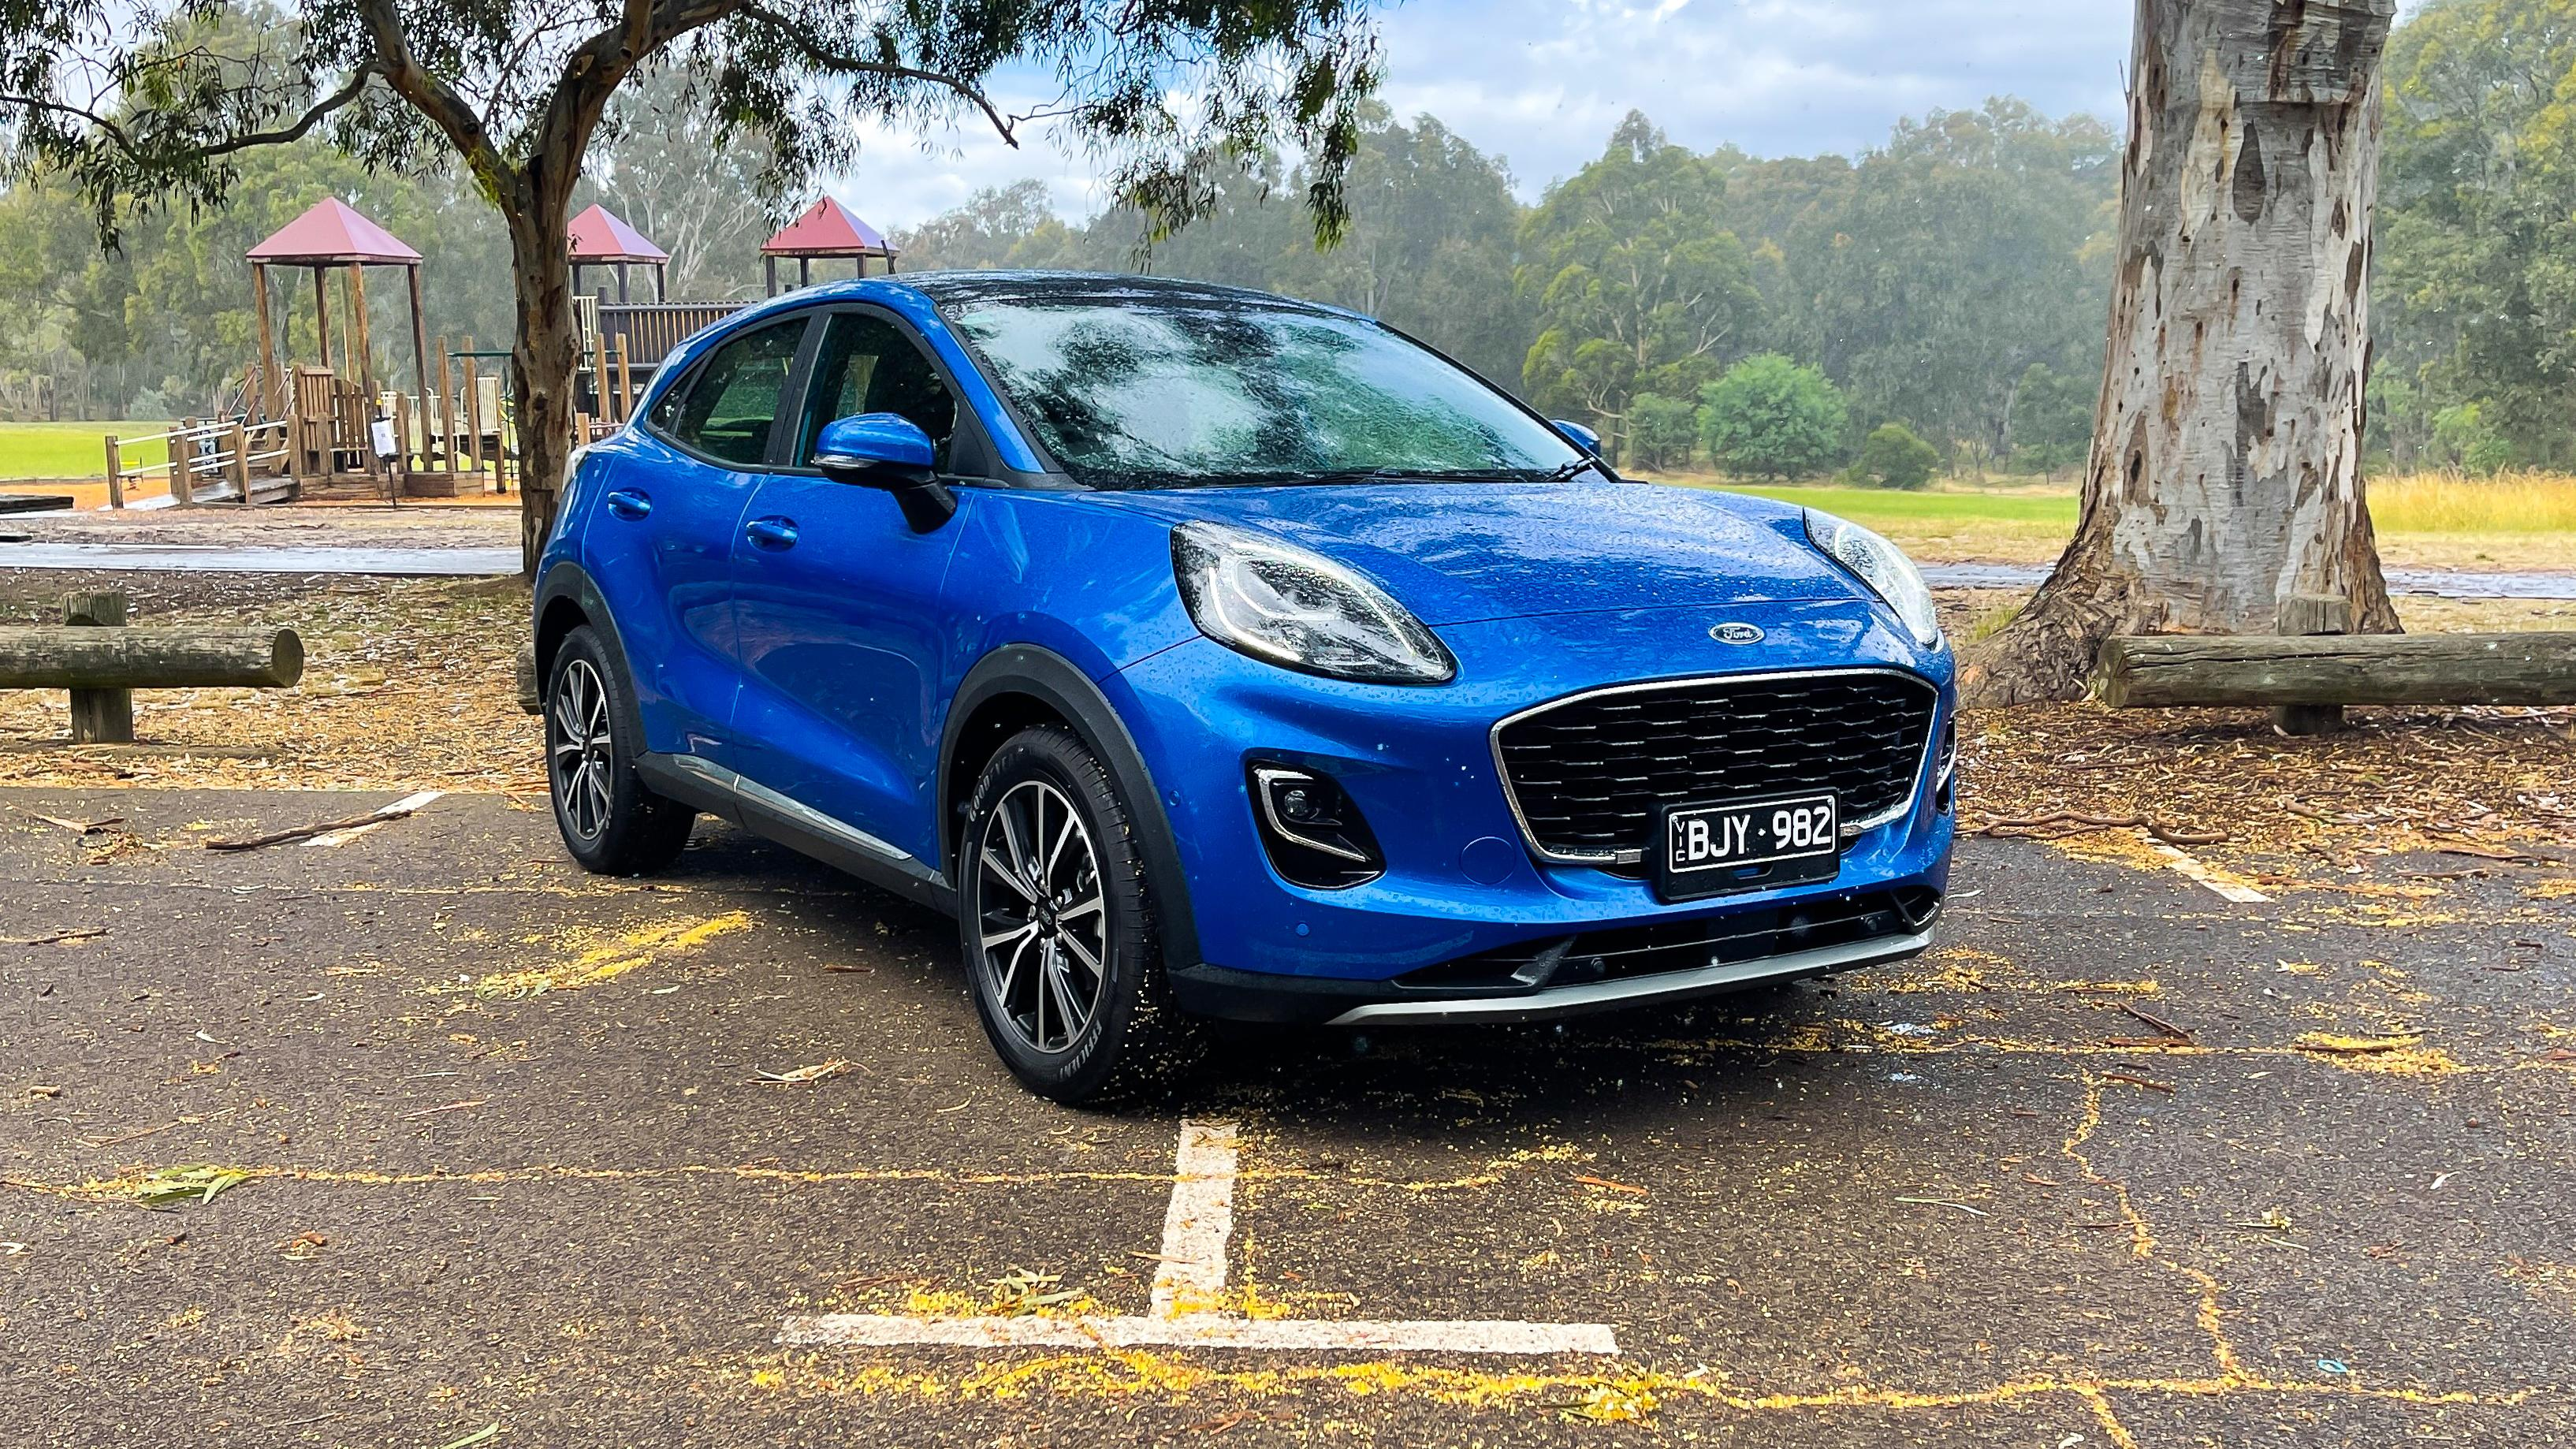 2021 Ford Puma FWD review